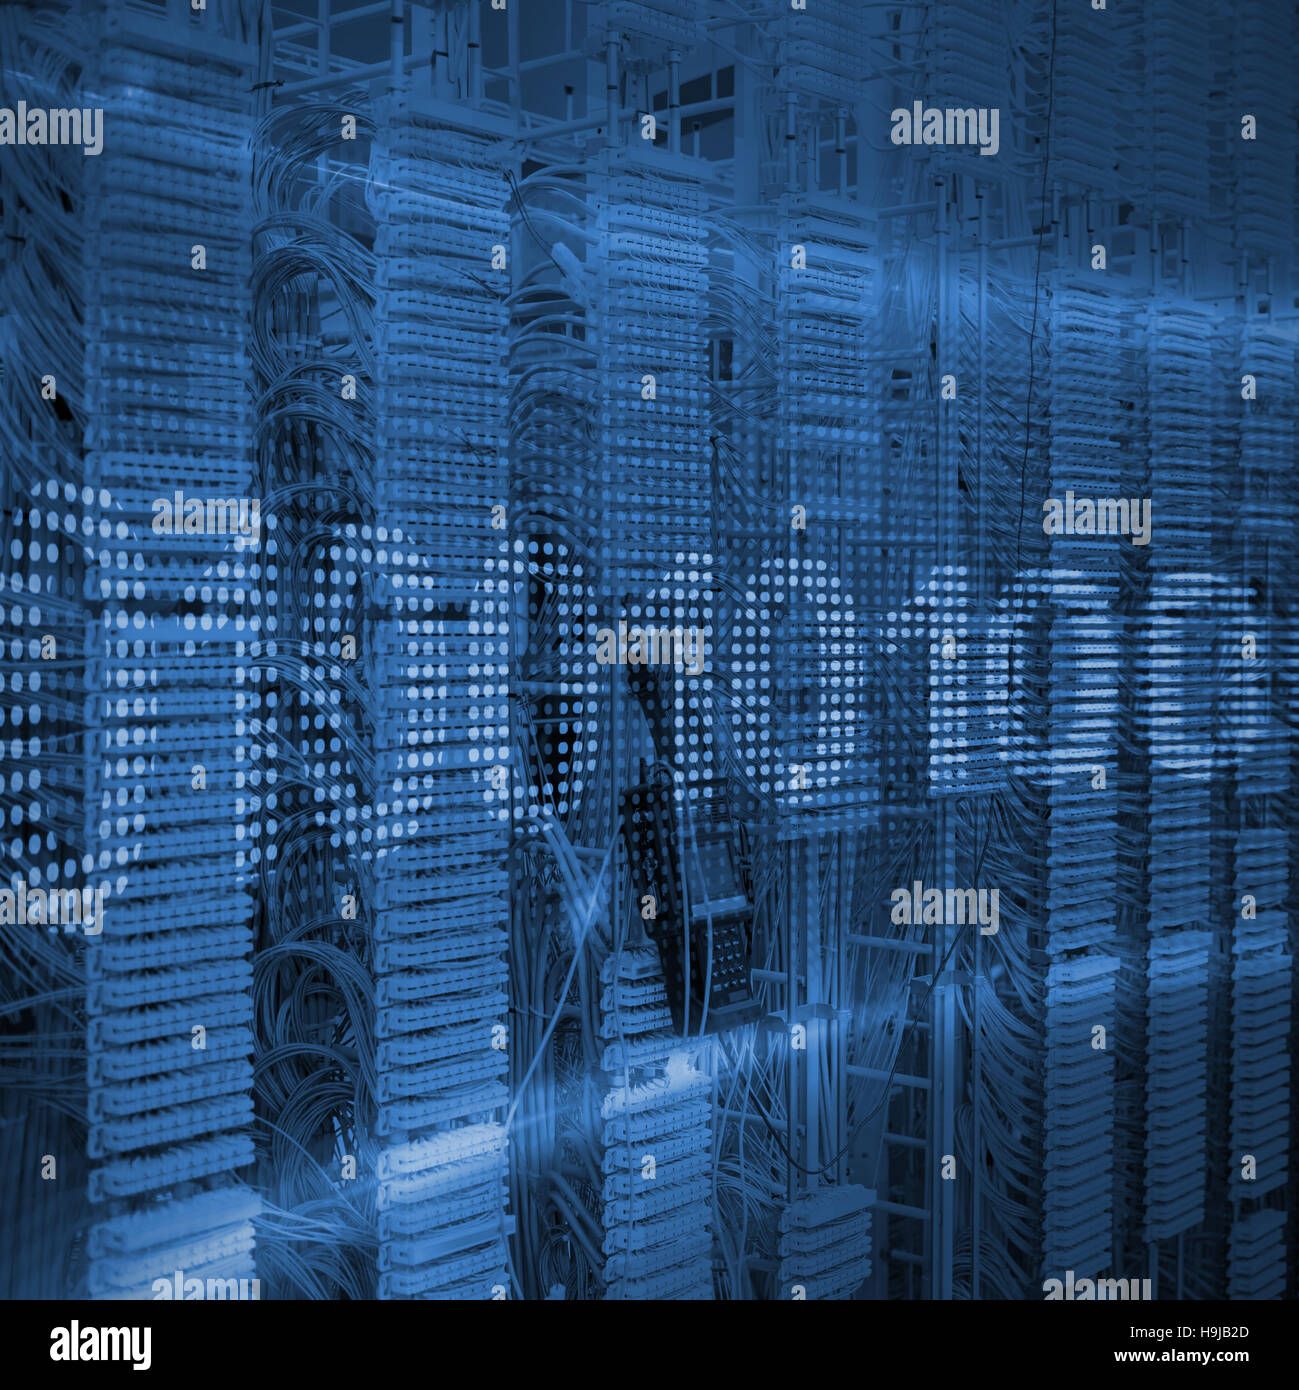 Composite image of binary code on digital screen - Stock Image